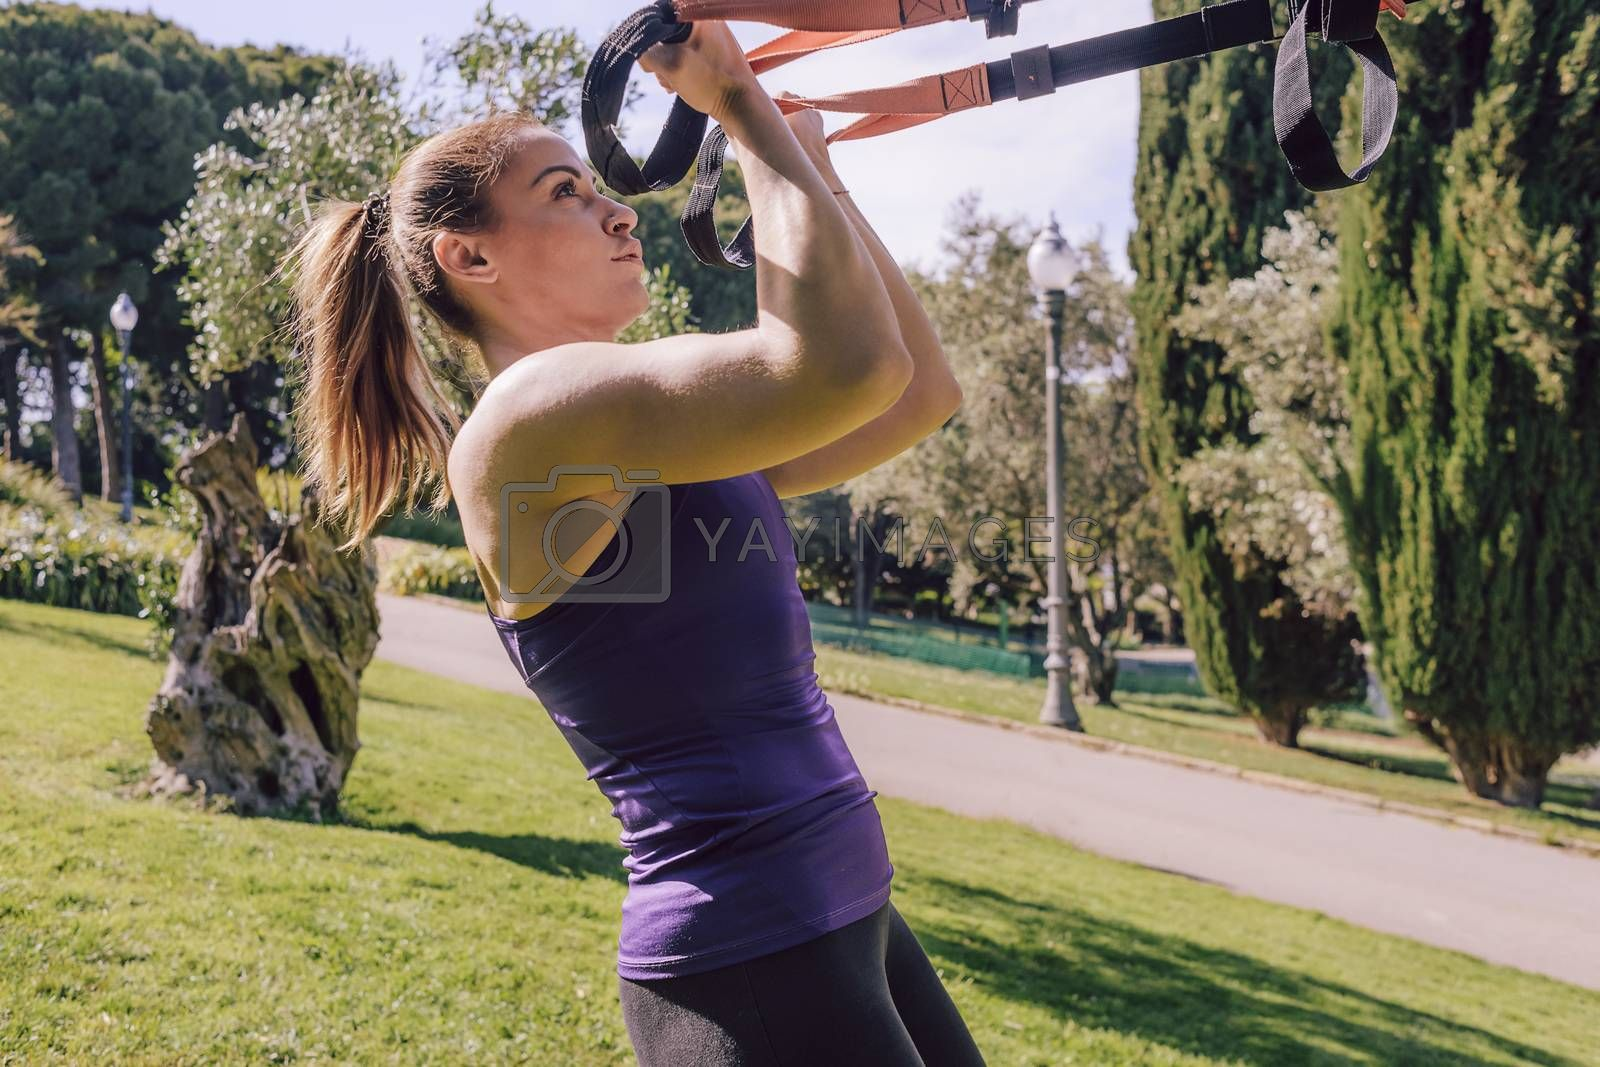 strong young woman training biceps with fitness suspension straps, during functional workout in a outdoor park